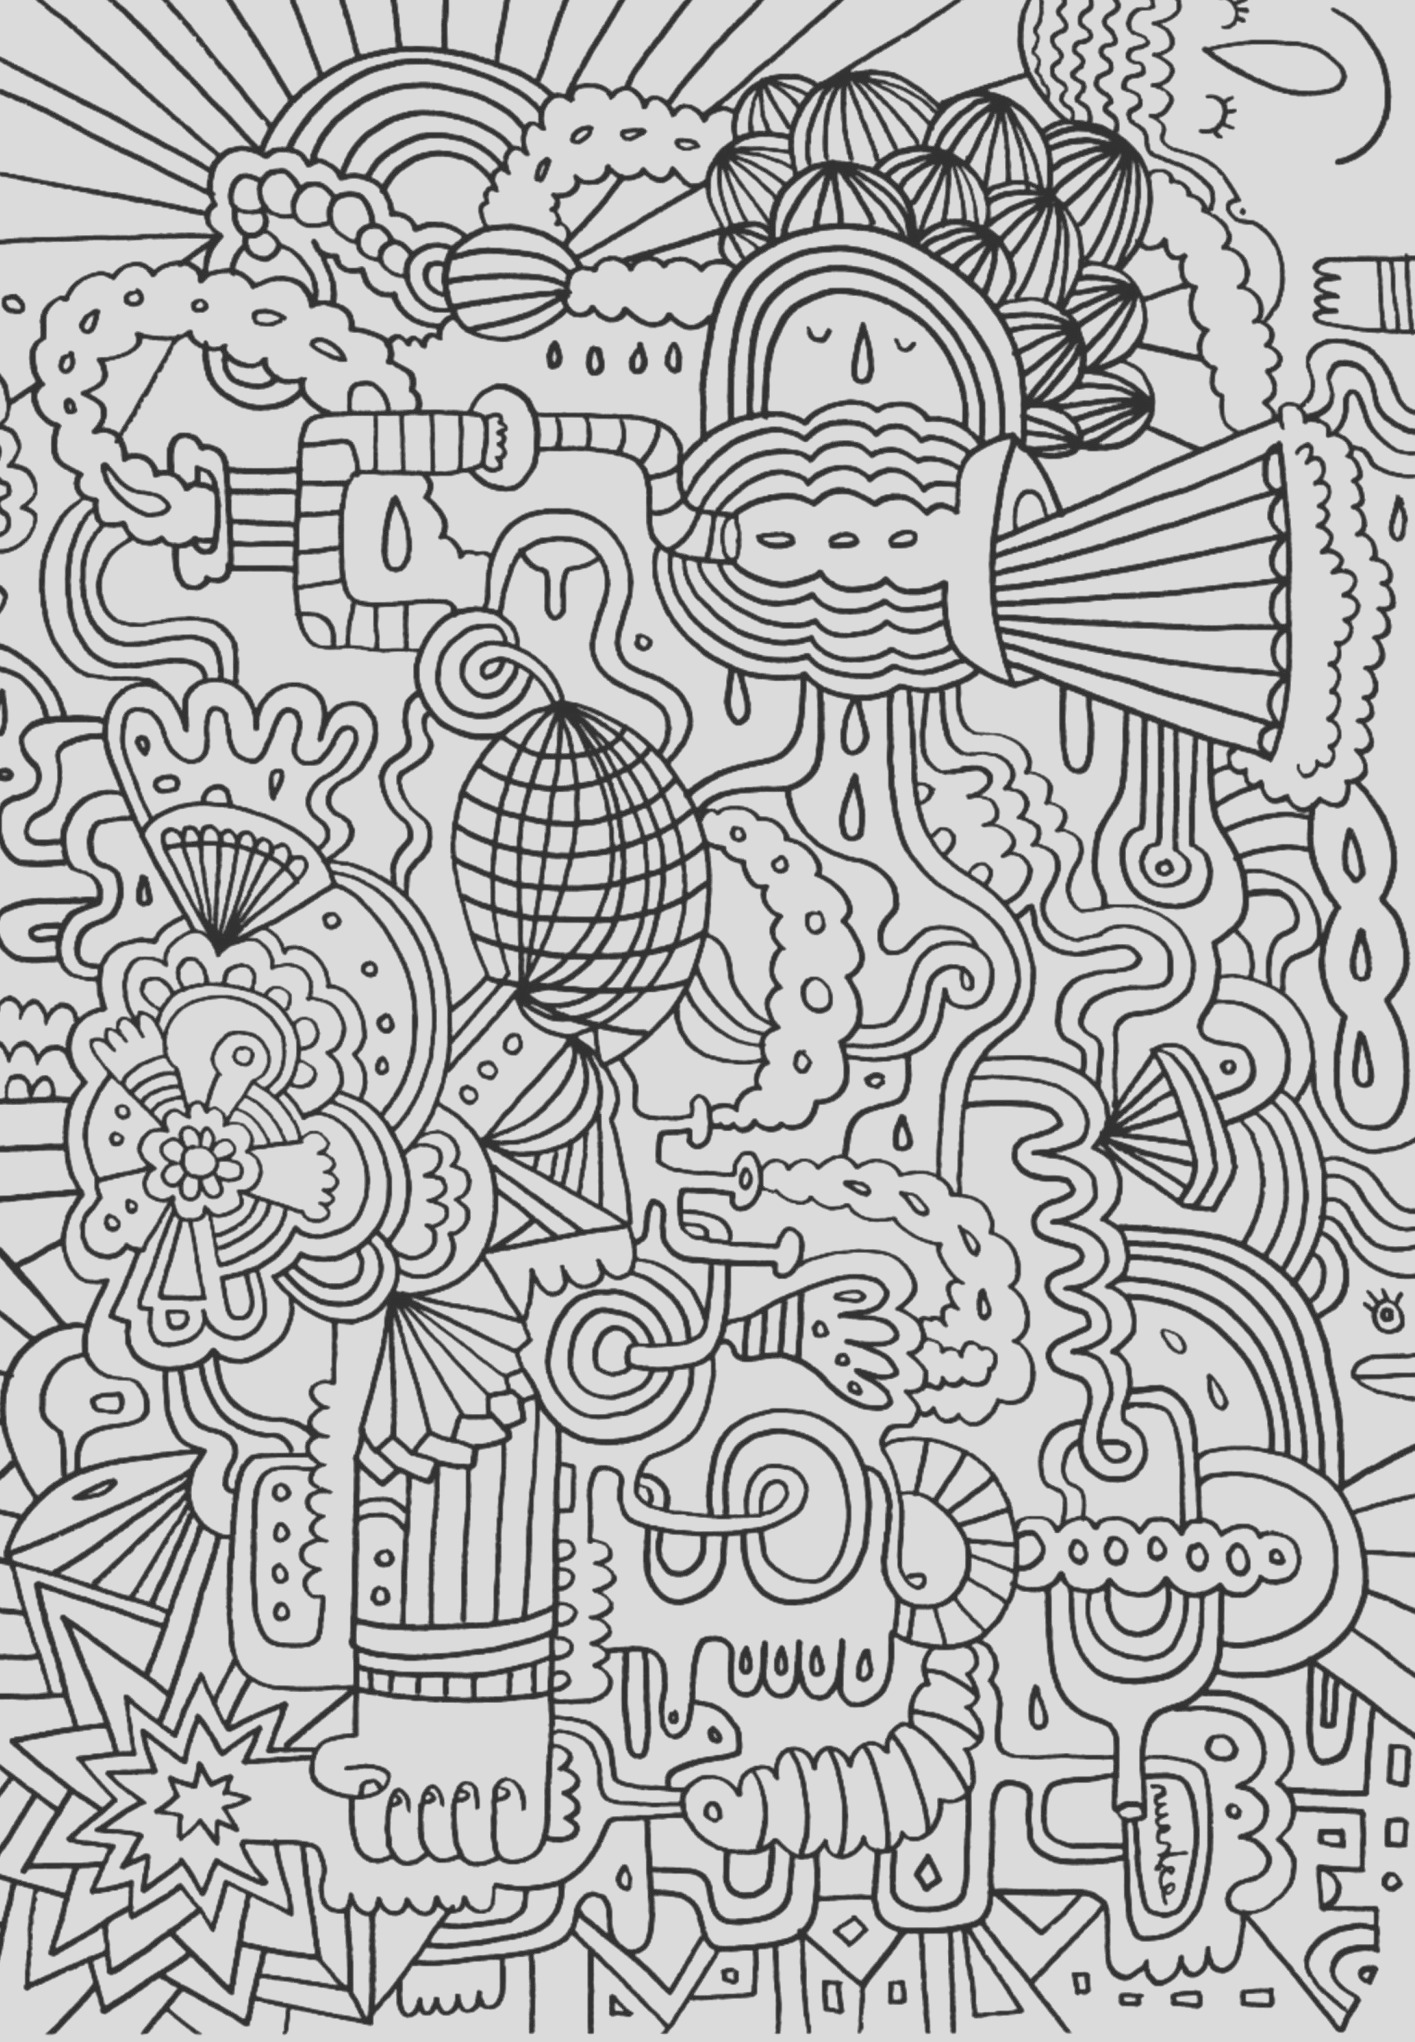 plex coloring pages for teens and adults